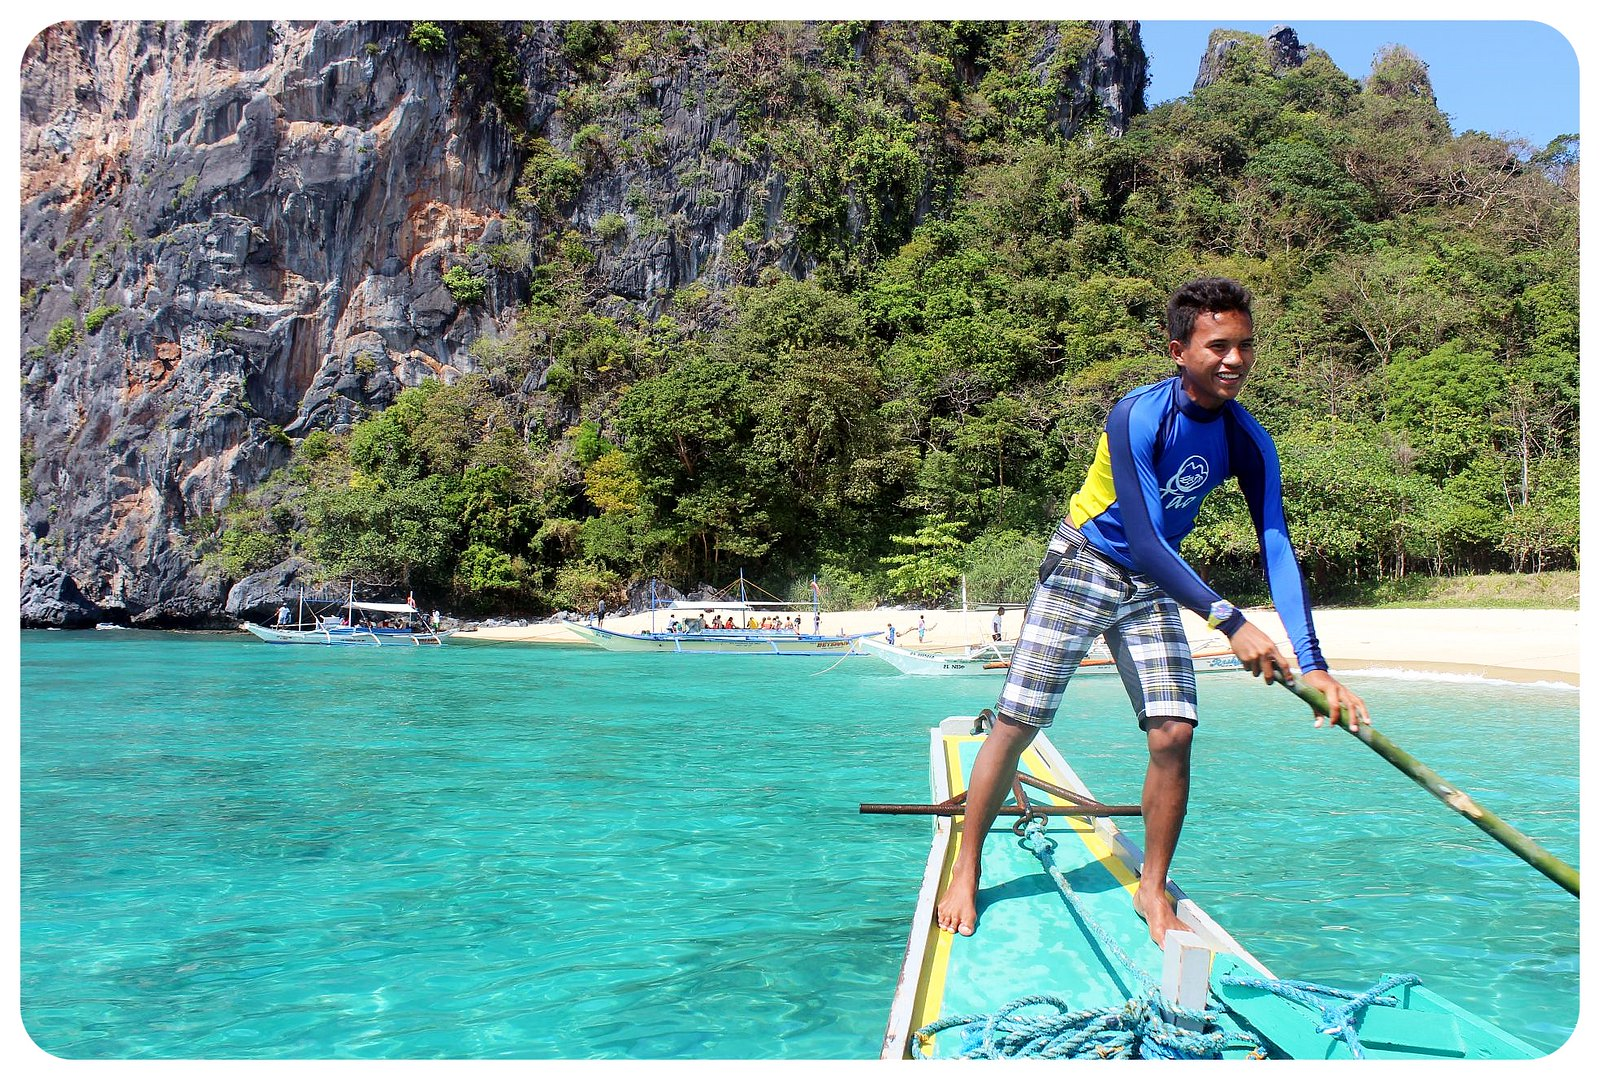 el nido single muslim girls The president is elected by popular vote for a single six  limestone cliffs of el nido,  the muslim population of the philippines was reported as 557% of .